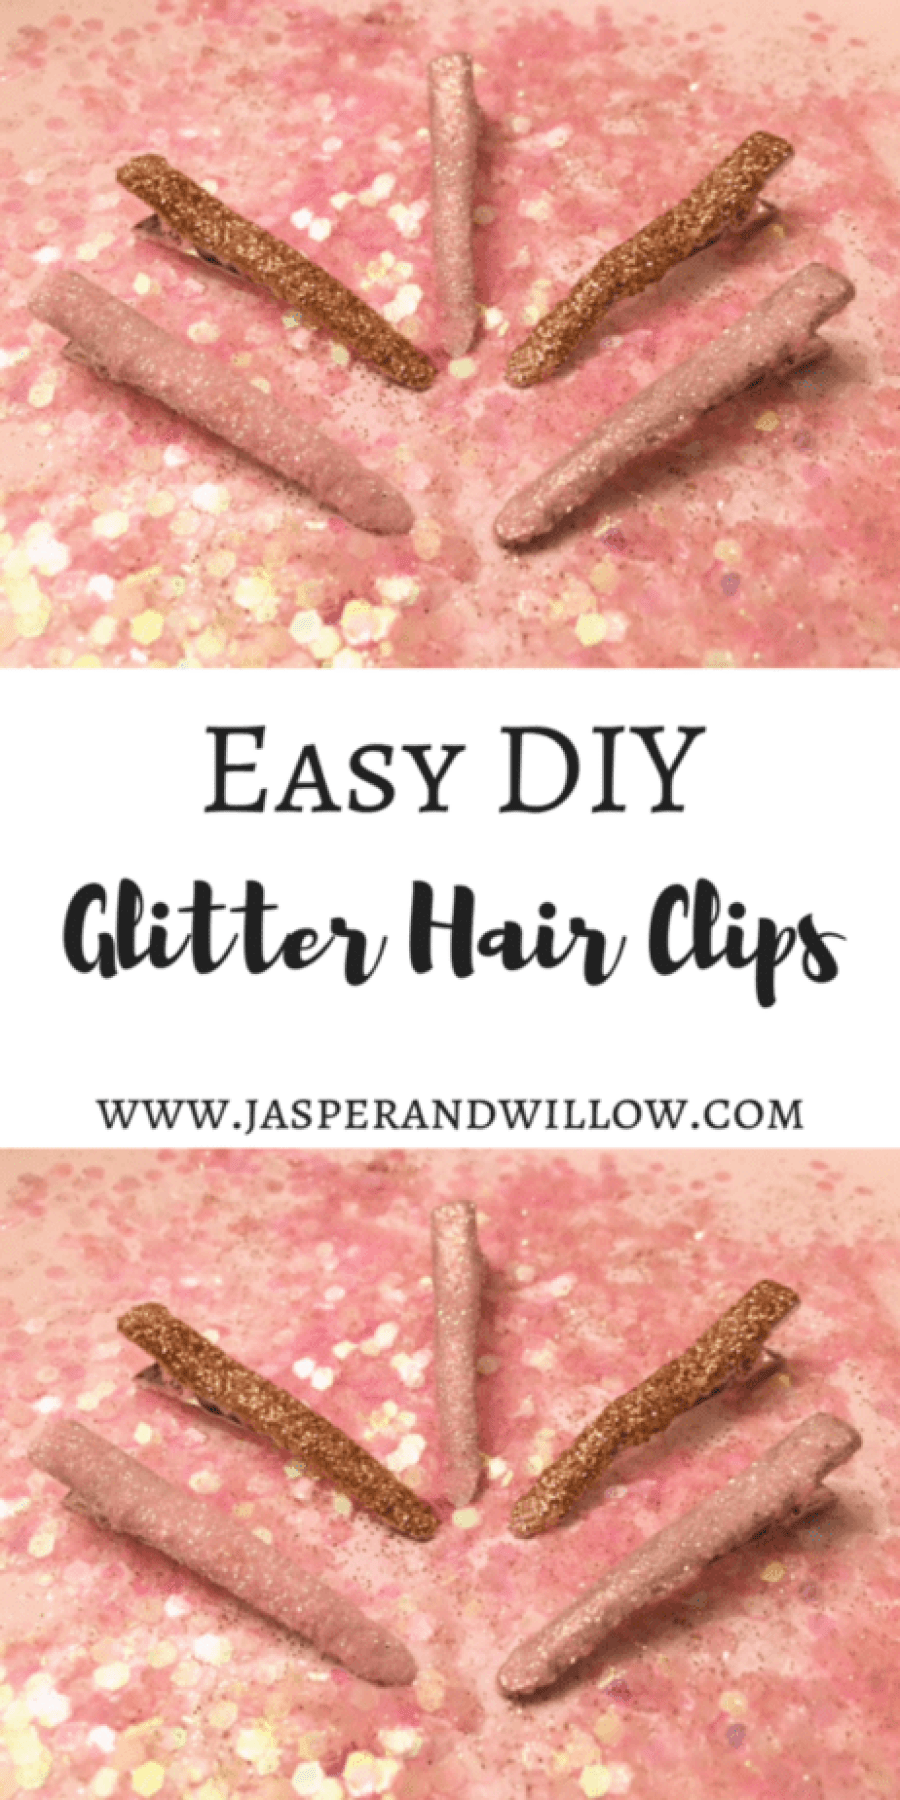 Easy DIY Glitter Hair Clips - Full Tutorial